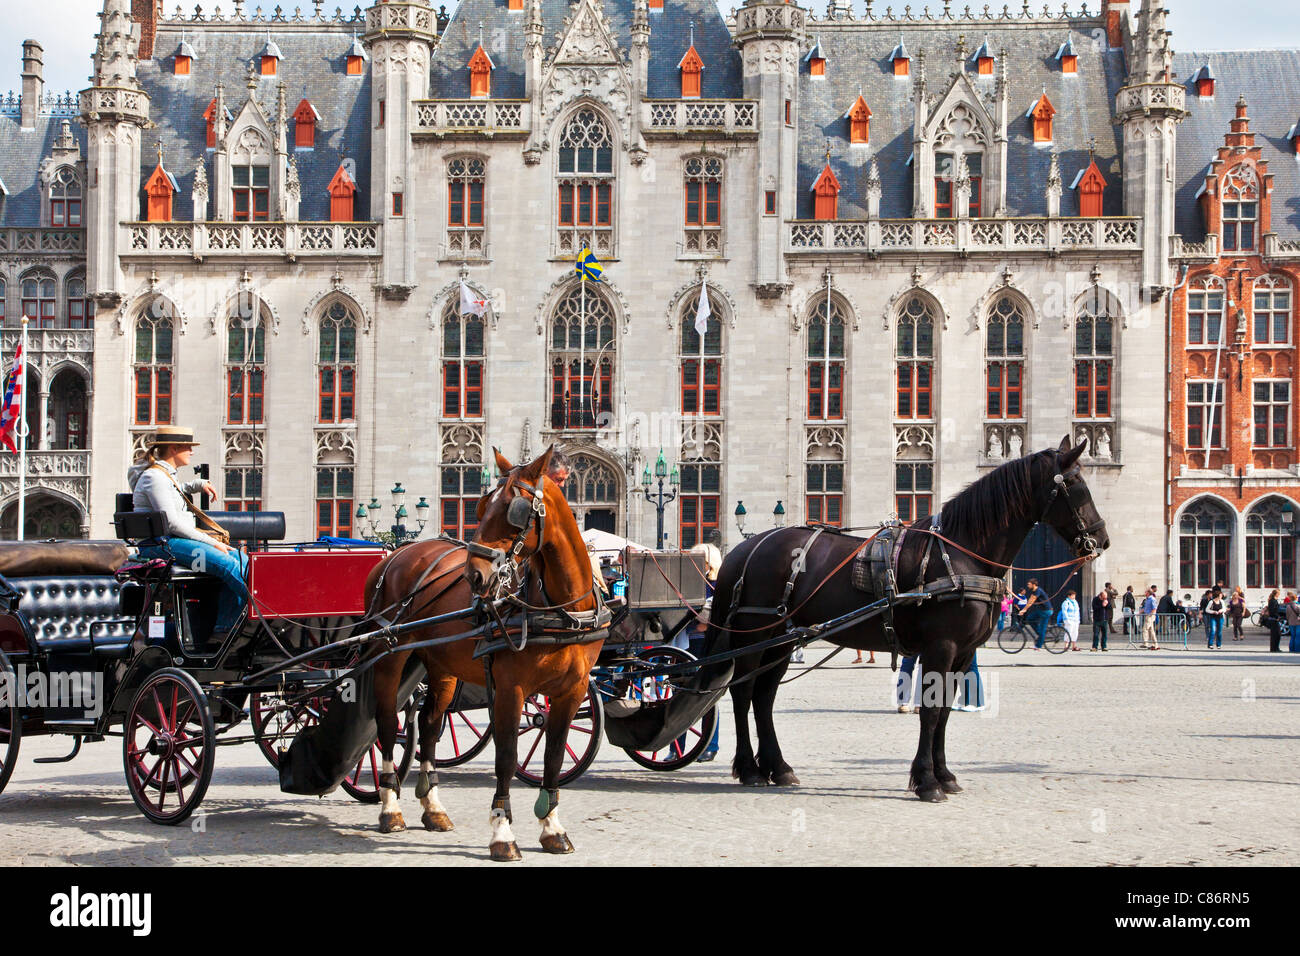 Tourist horse and carriage before the Provincial Court, Provincaal Hof in Grote Markt or Market Square, Bruges (Brugge), - Stock Image